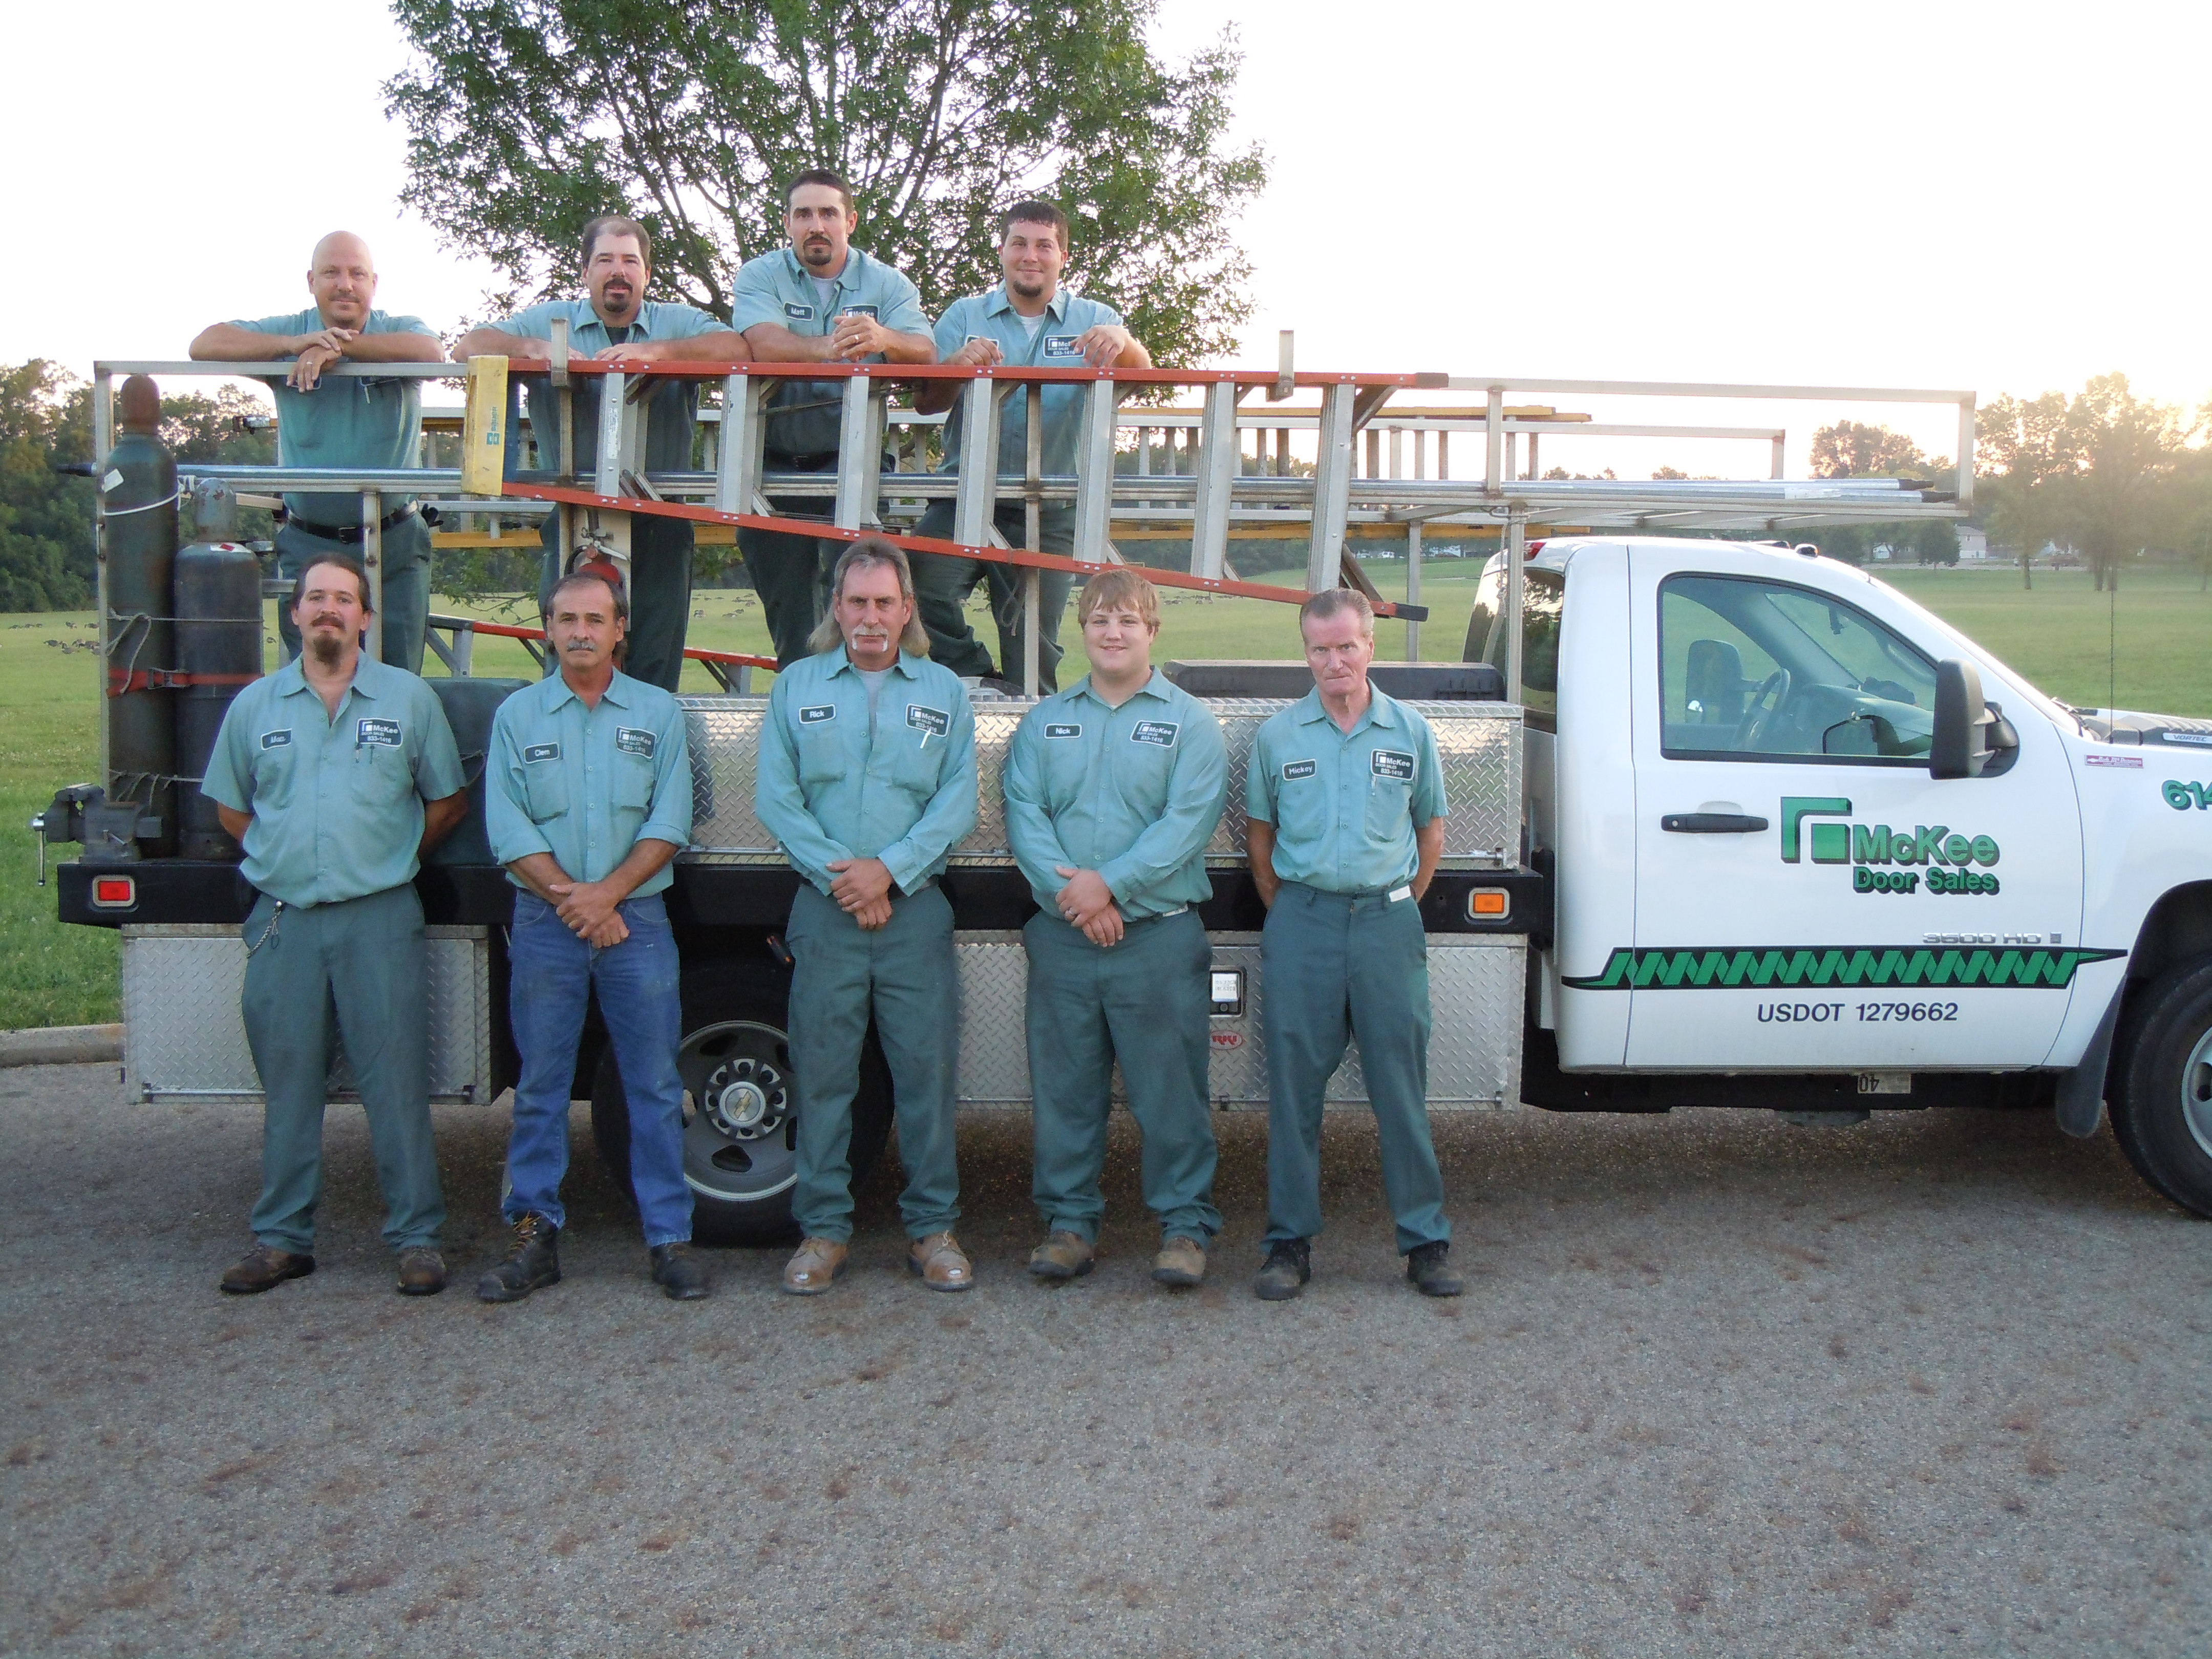 McKee Door Service and Repair staff